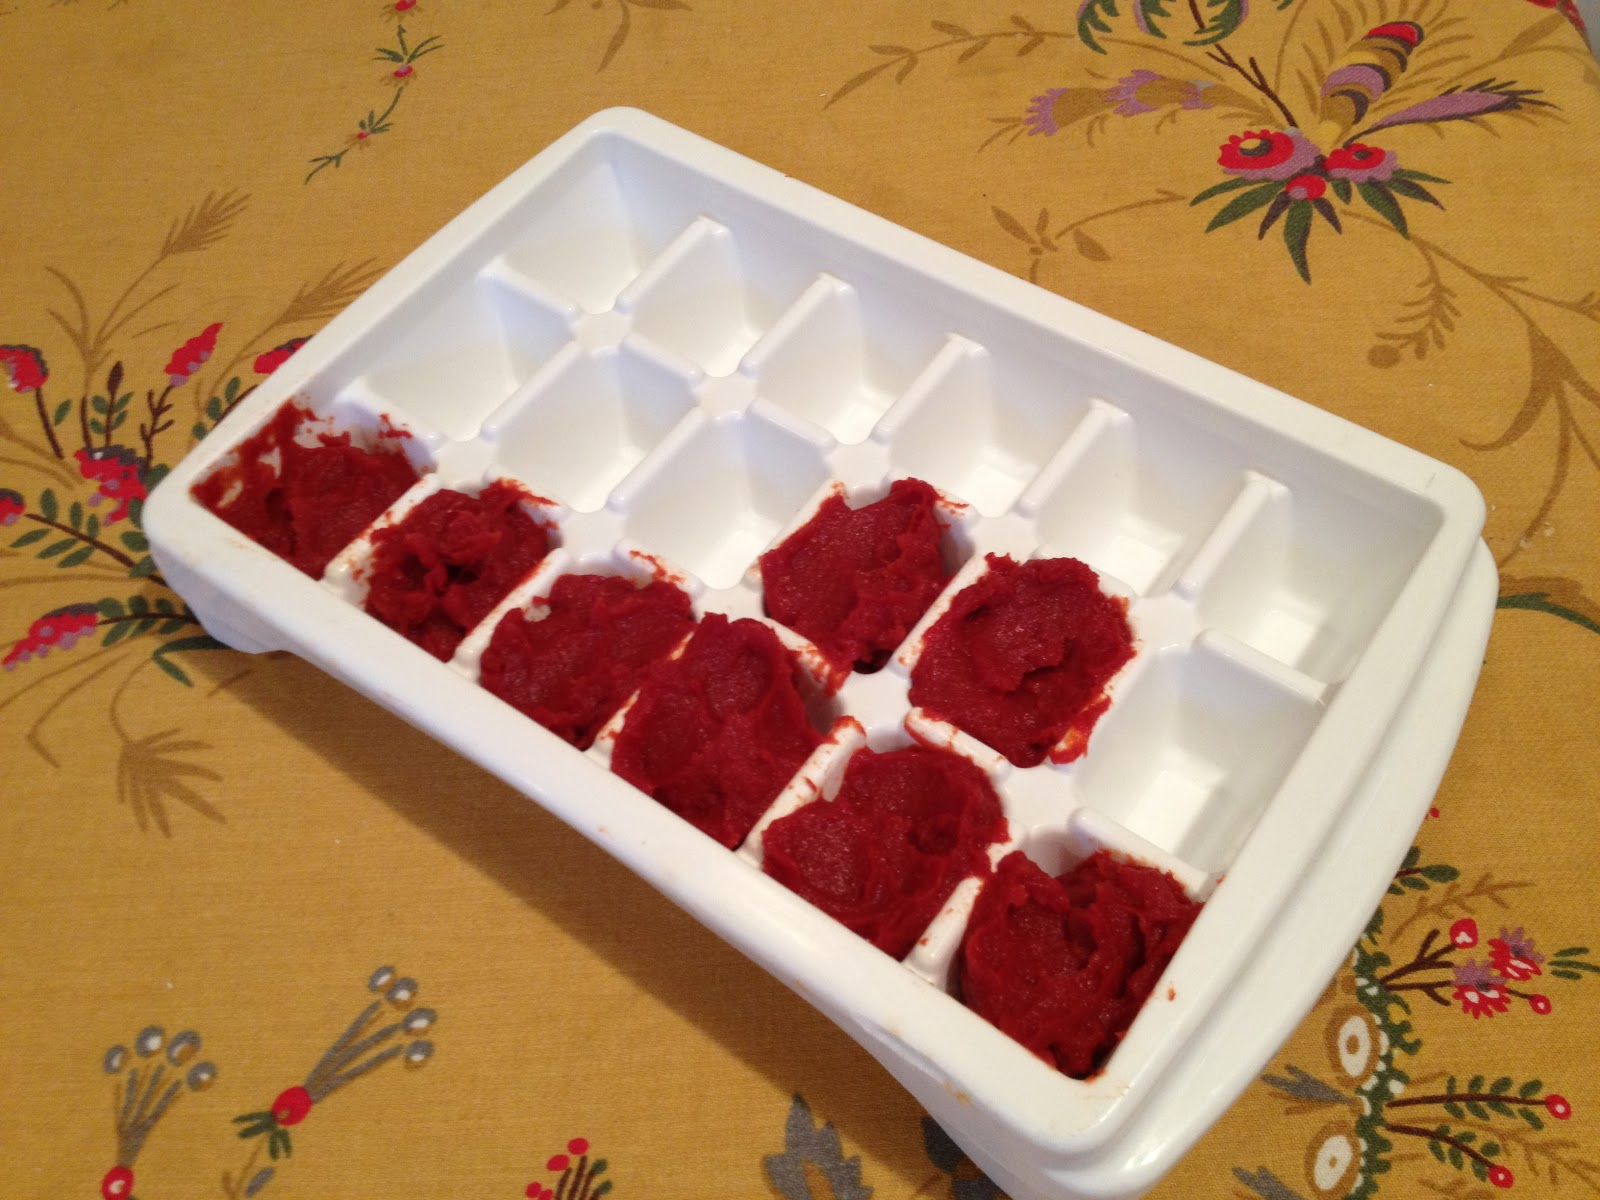 Freeze leftover tomato paste